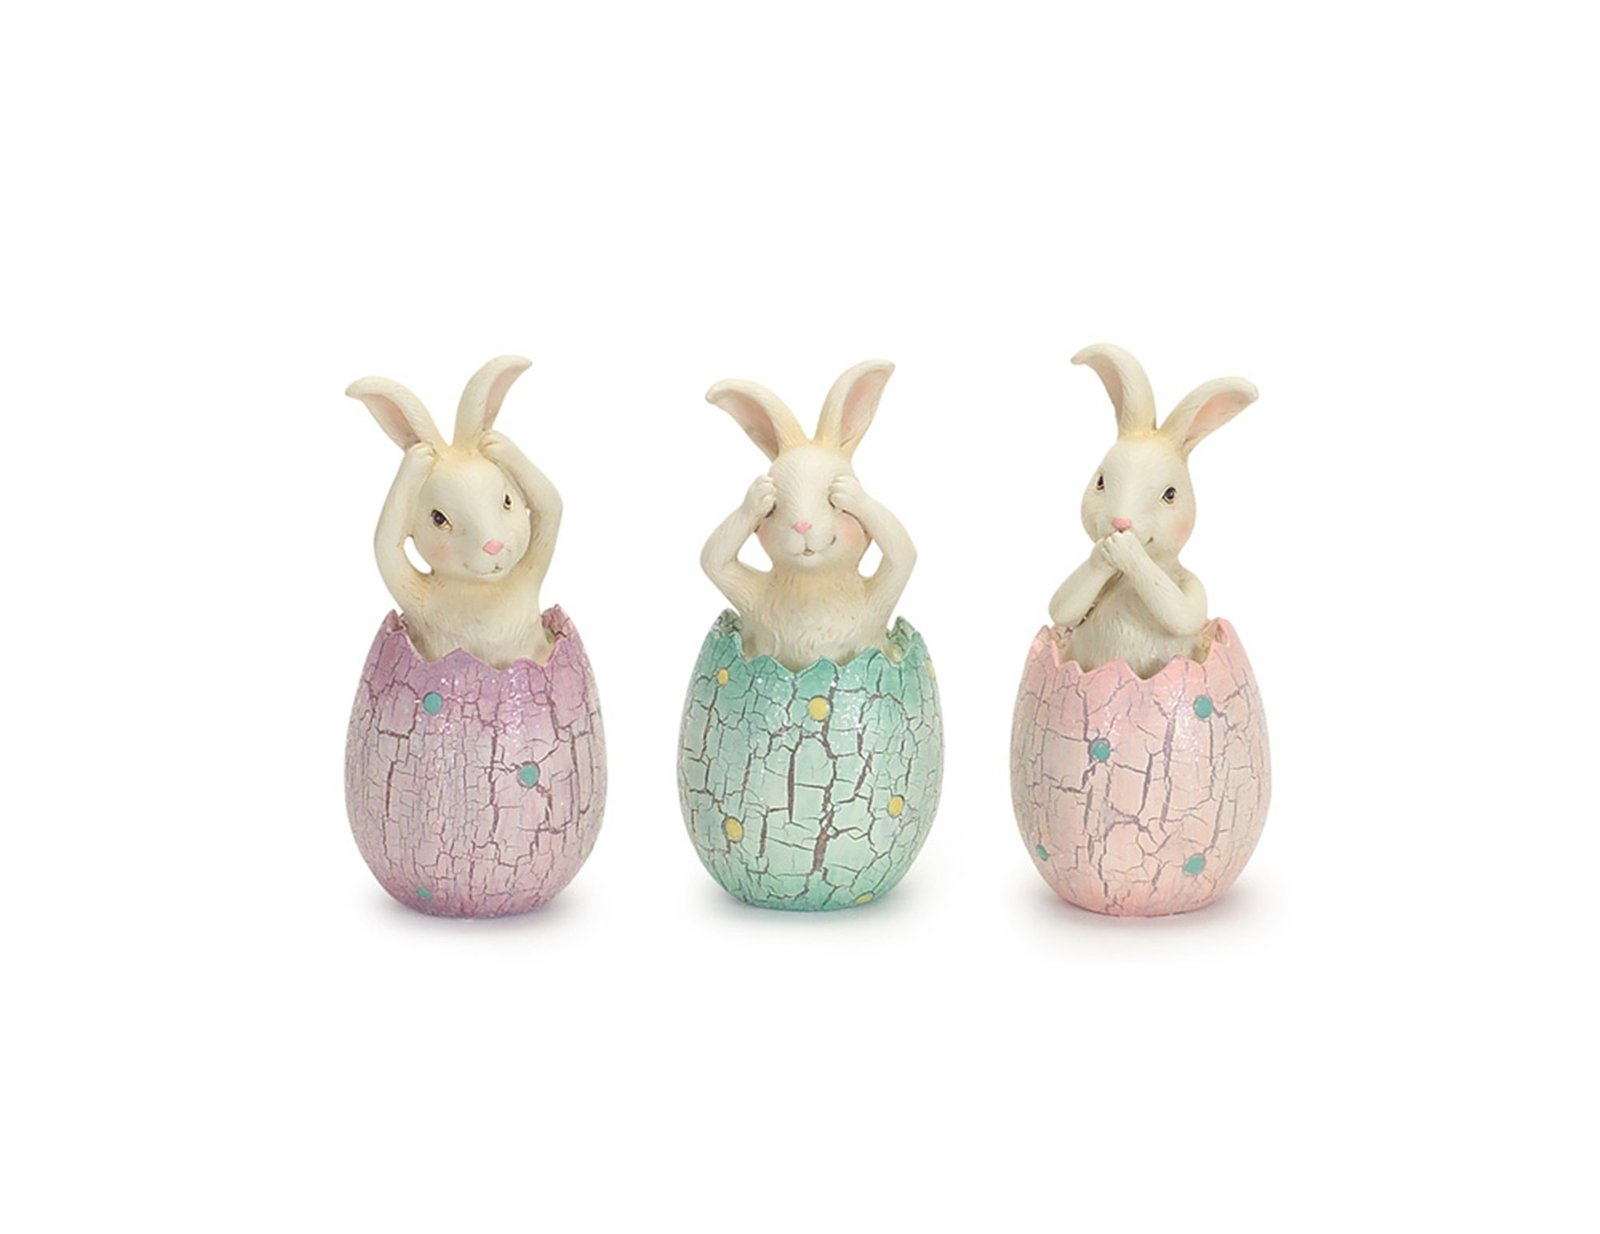 Hear See Speak No Evil Bunny Rabbits in Pastel Eggs